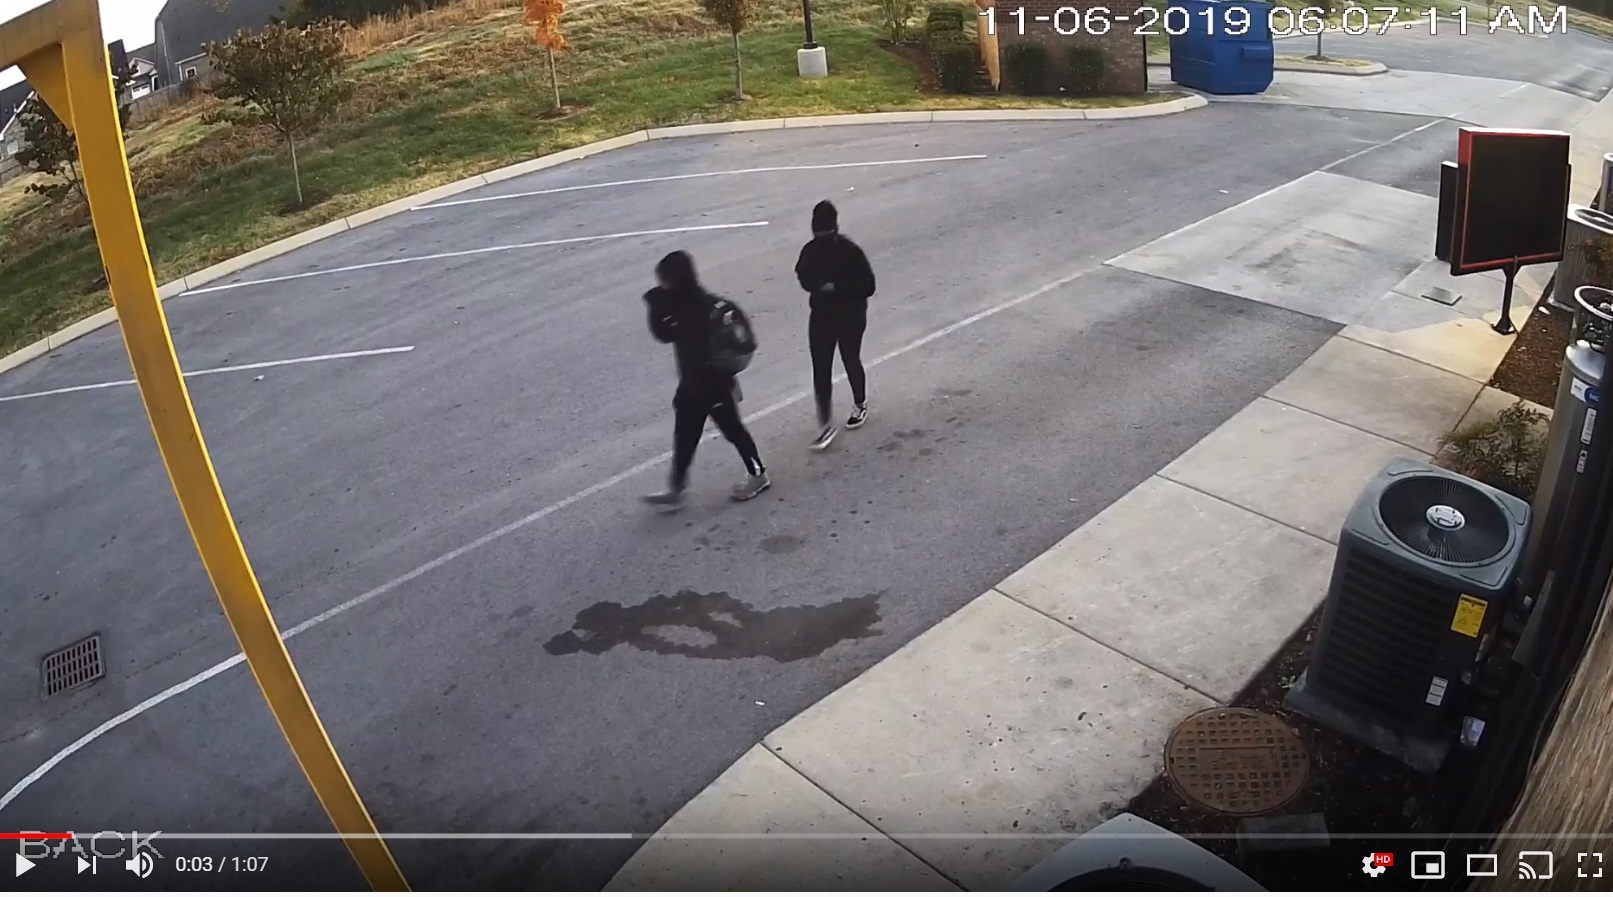 VIDEO: Man and Woman arrested for a string of business burglaries in Murfreesboro